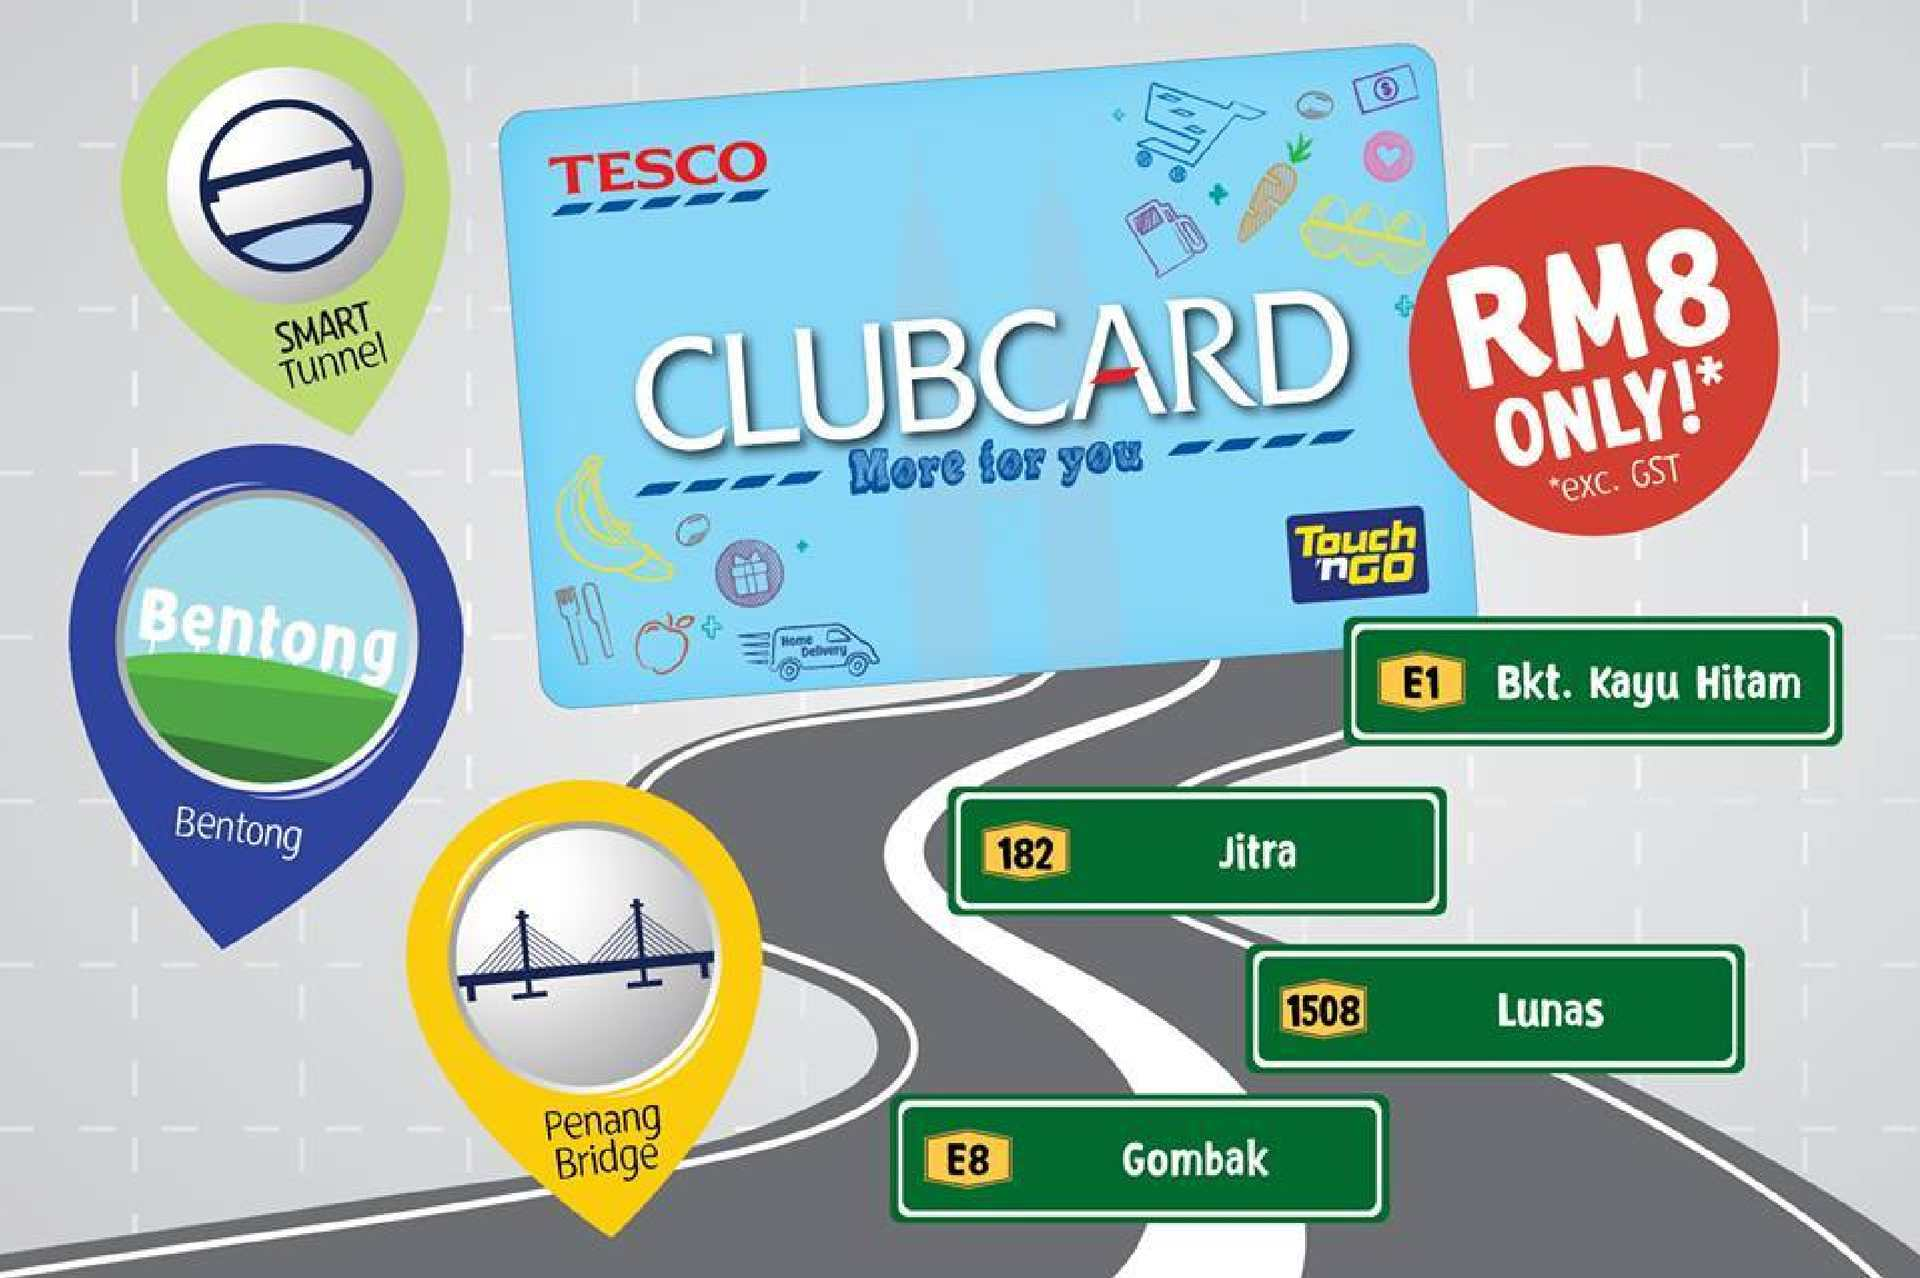 Calameo Get Our Tesco Clubcard Touch N Go For Rm8 At Tesco Valid All Year Round71196 71196